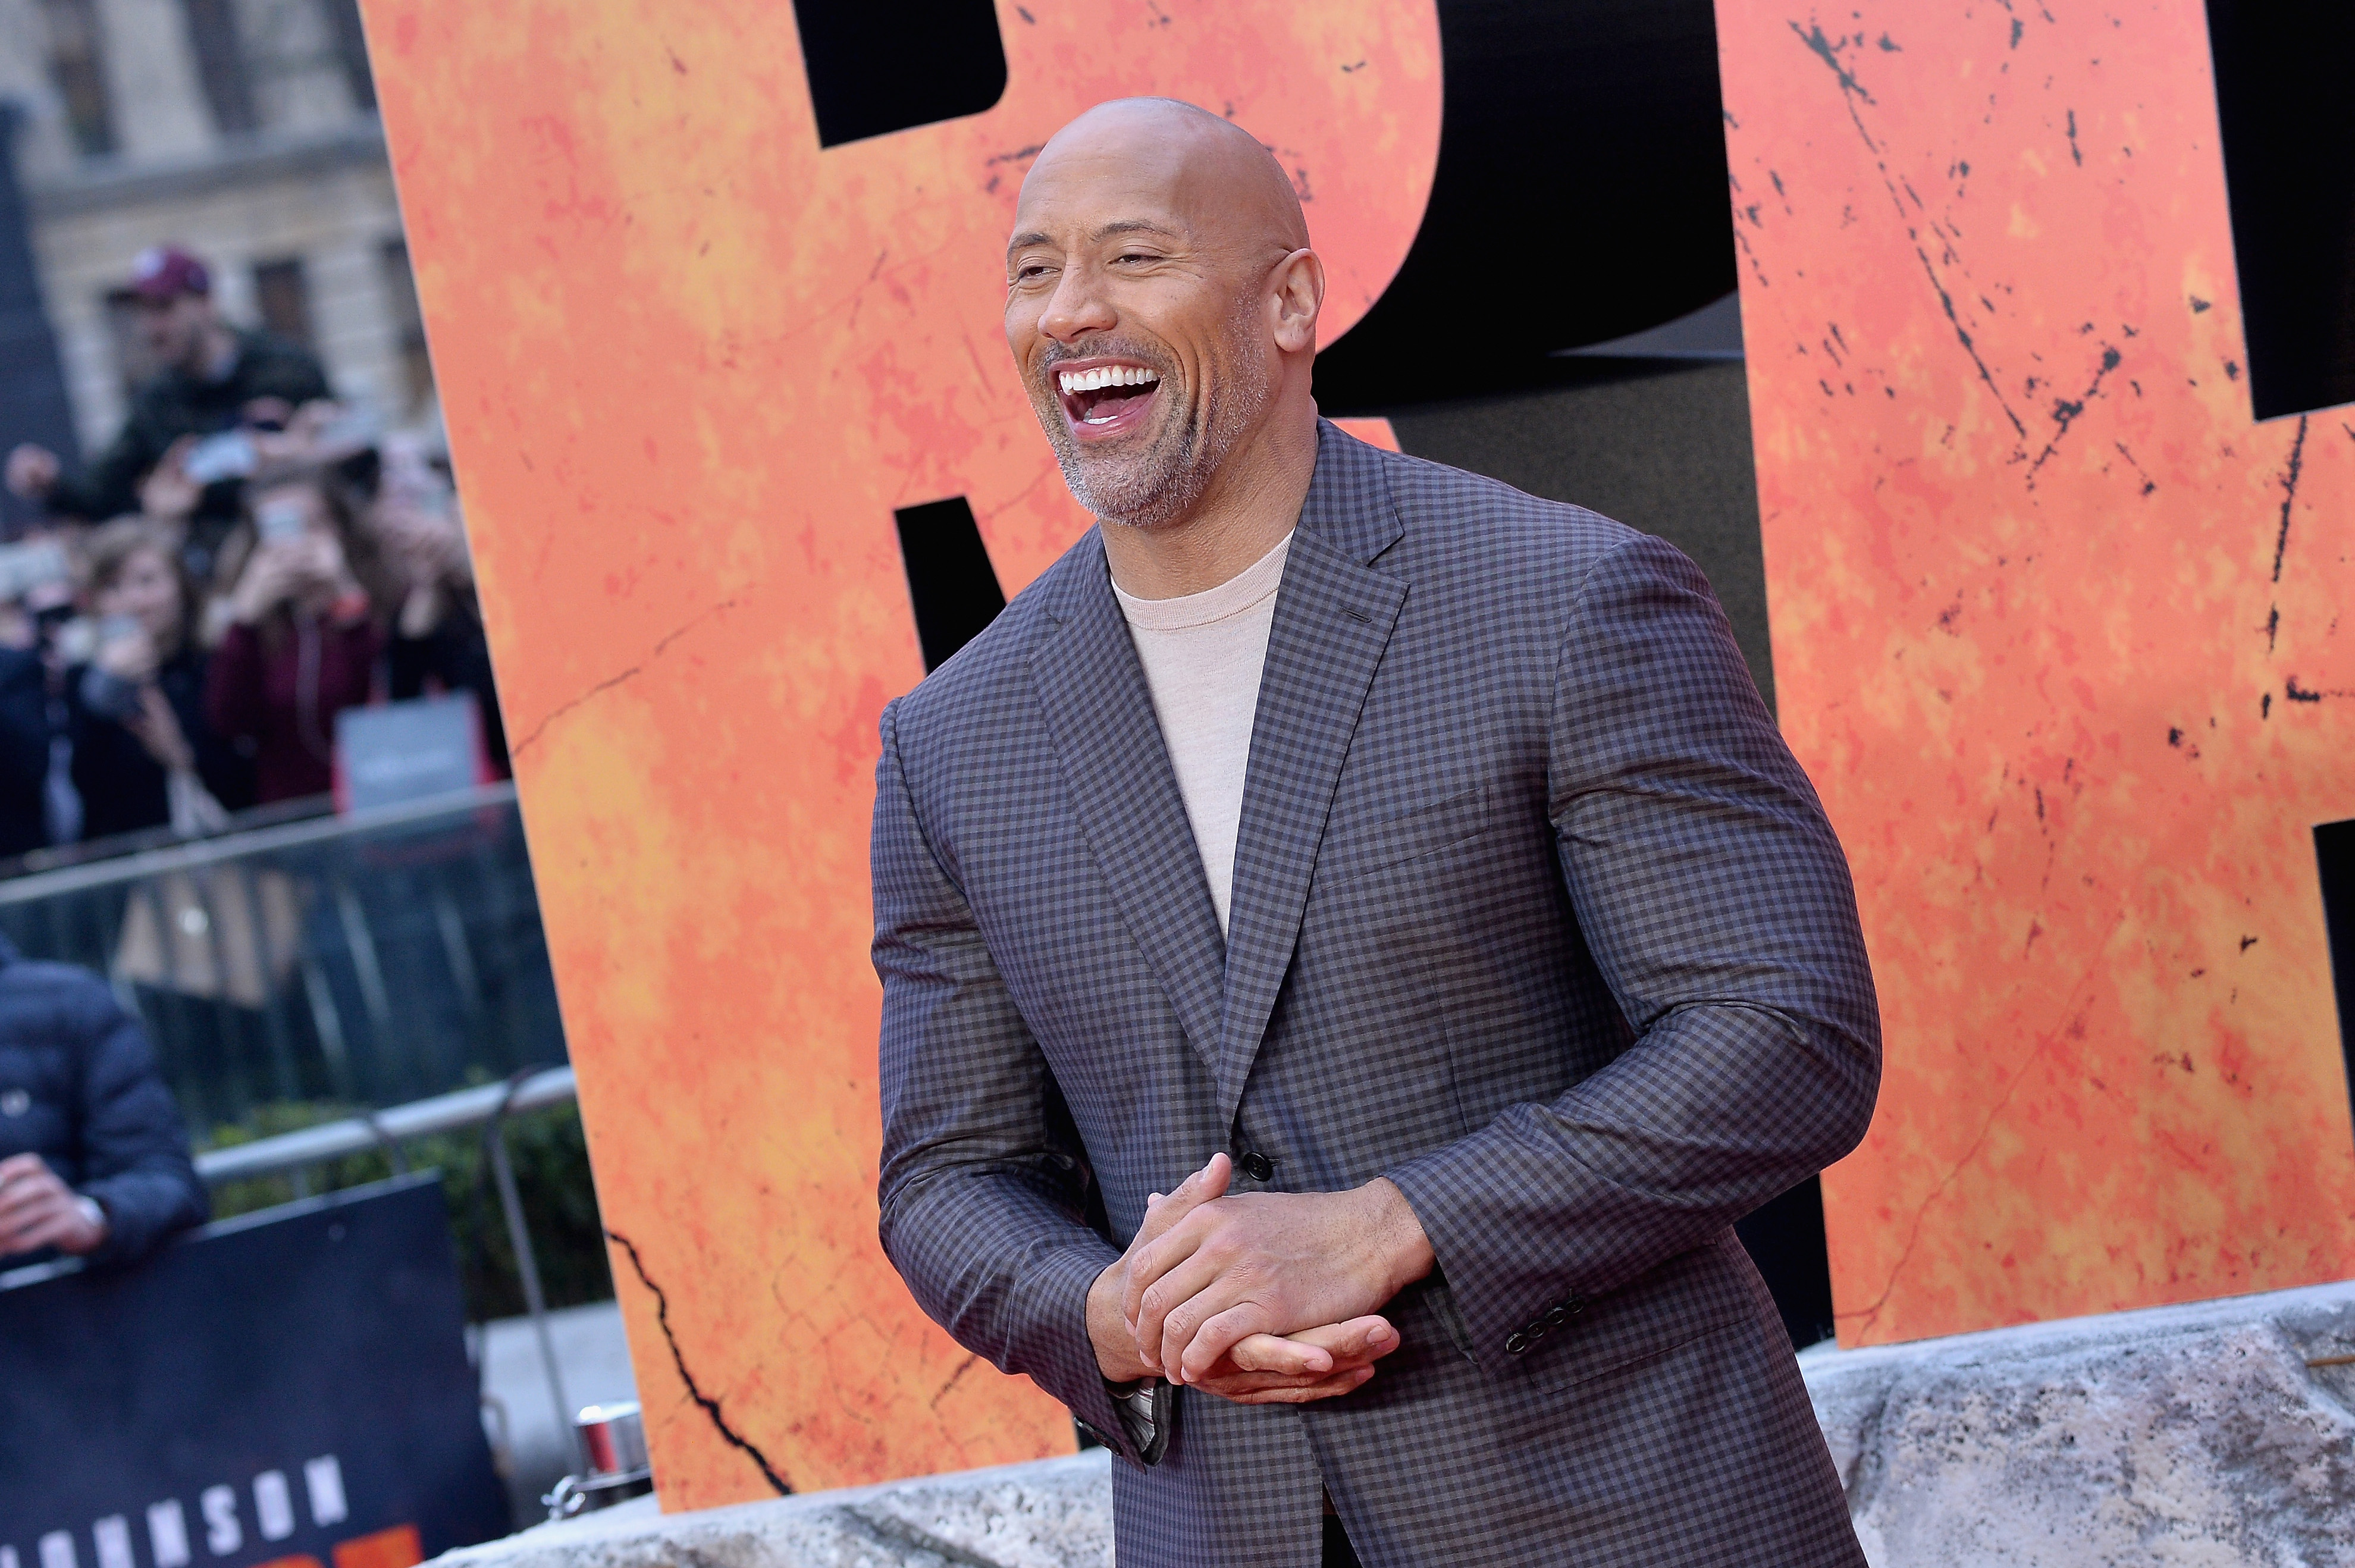 POLL: Nearly Half Of Americans Want The Rock To Run For President